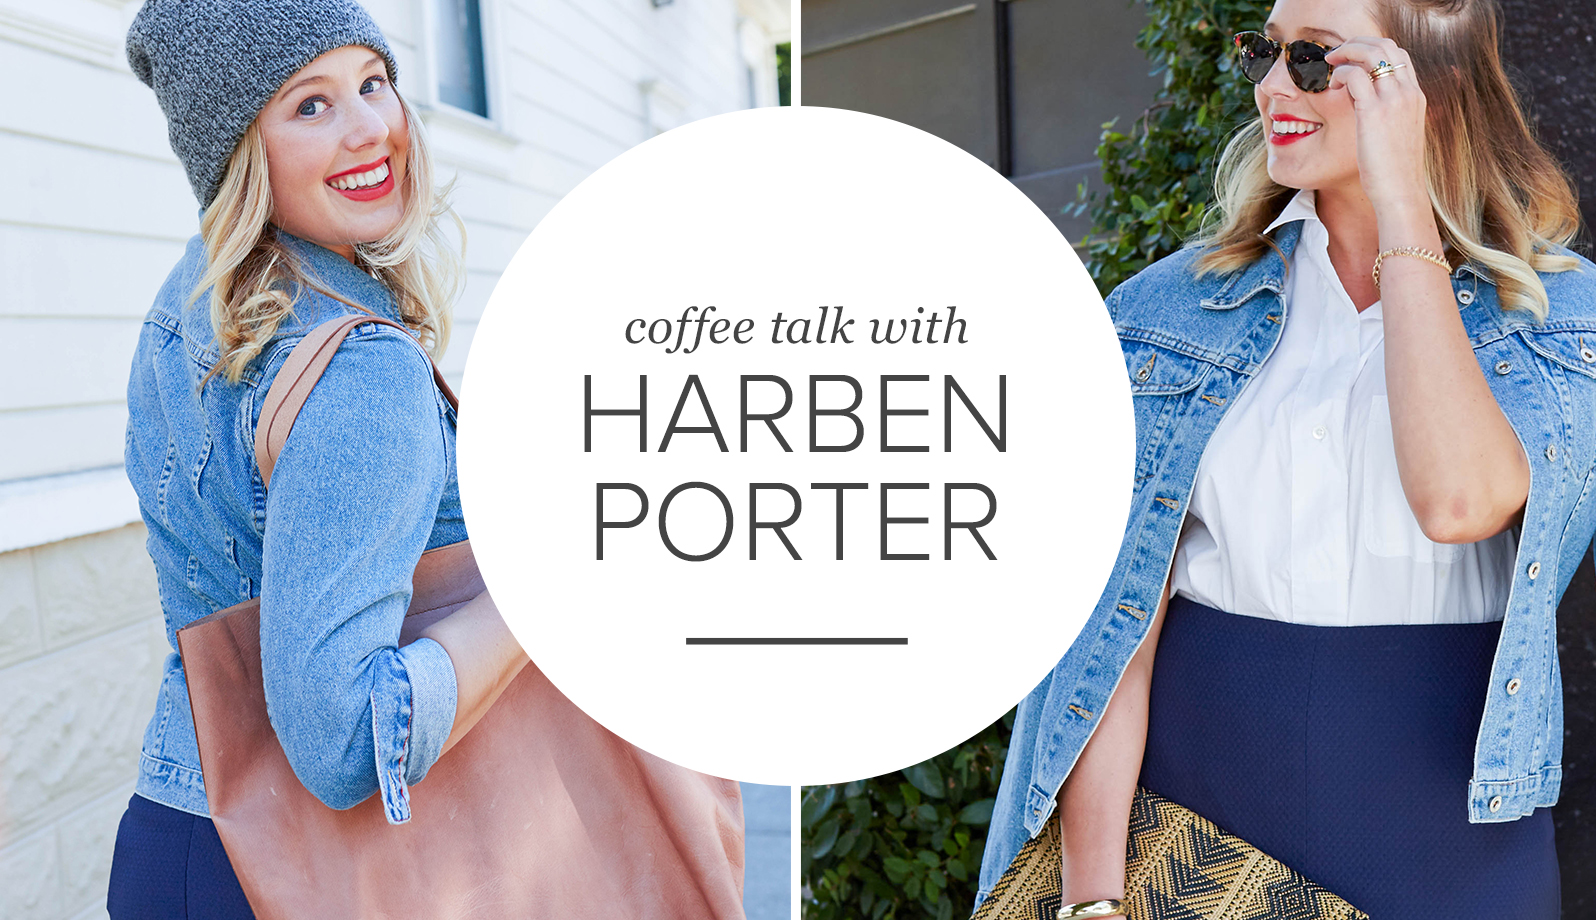 092116_thredUP_blog_coffeeTalkWithHarben_FeaturedImage.jpg